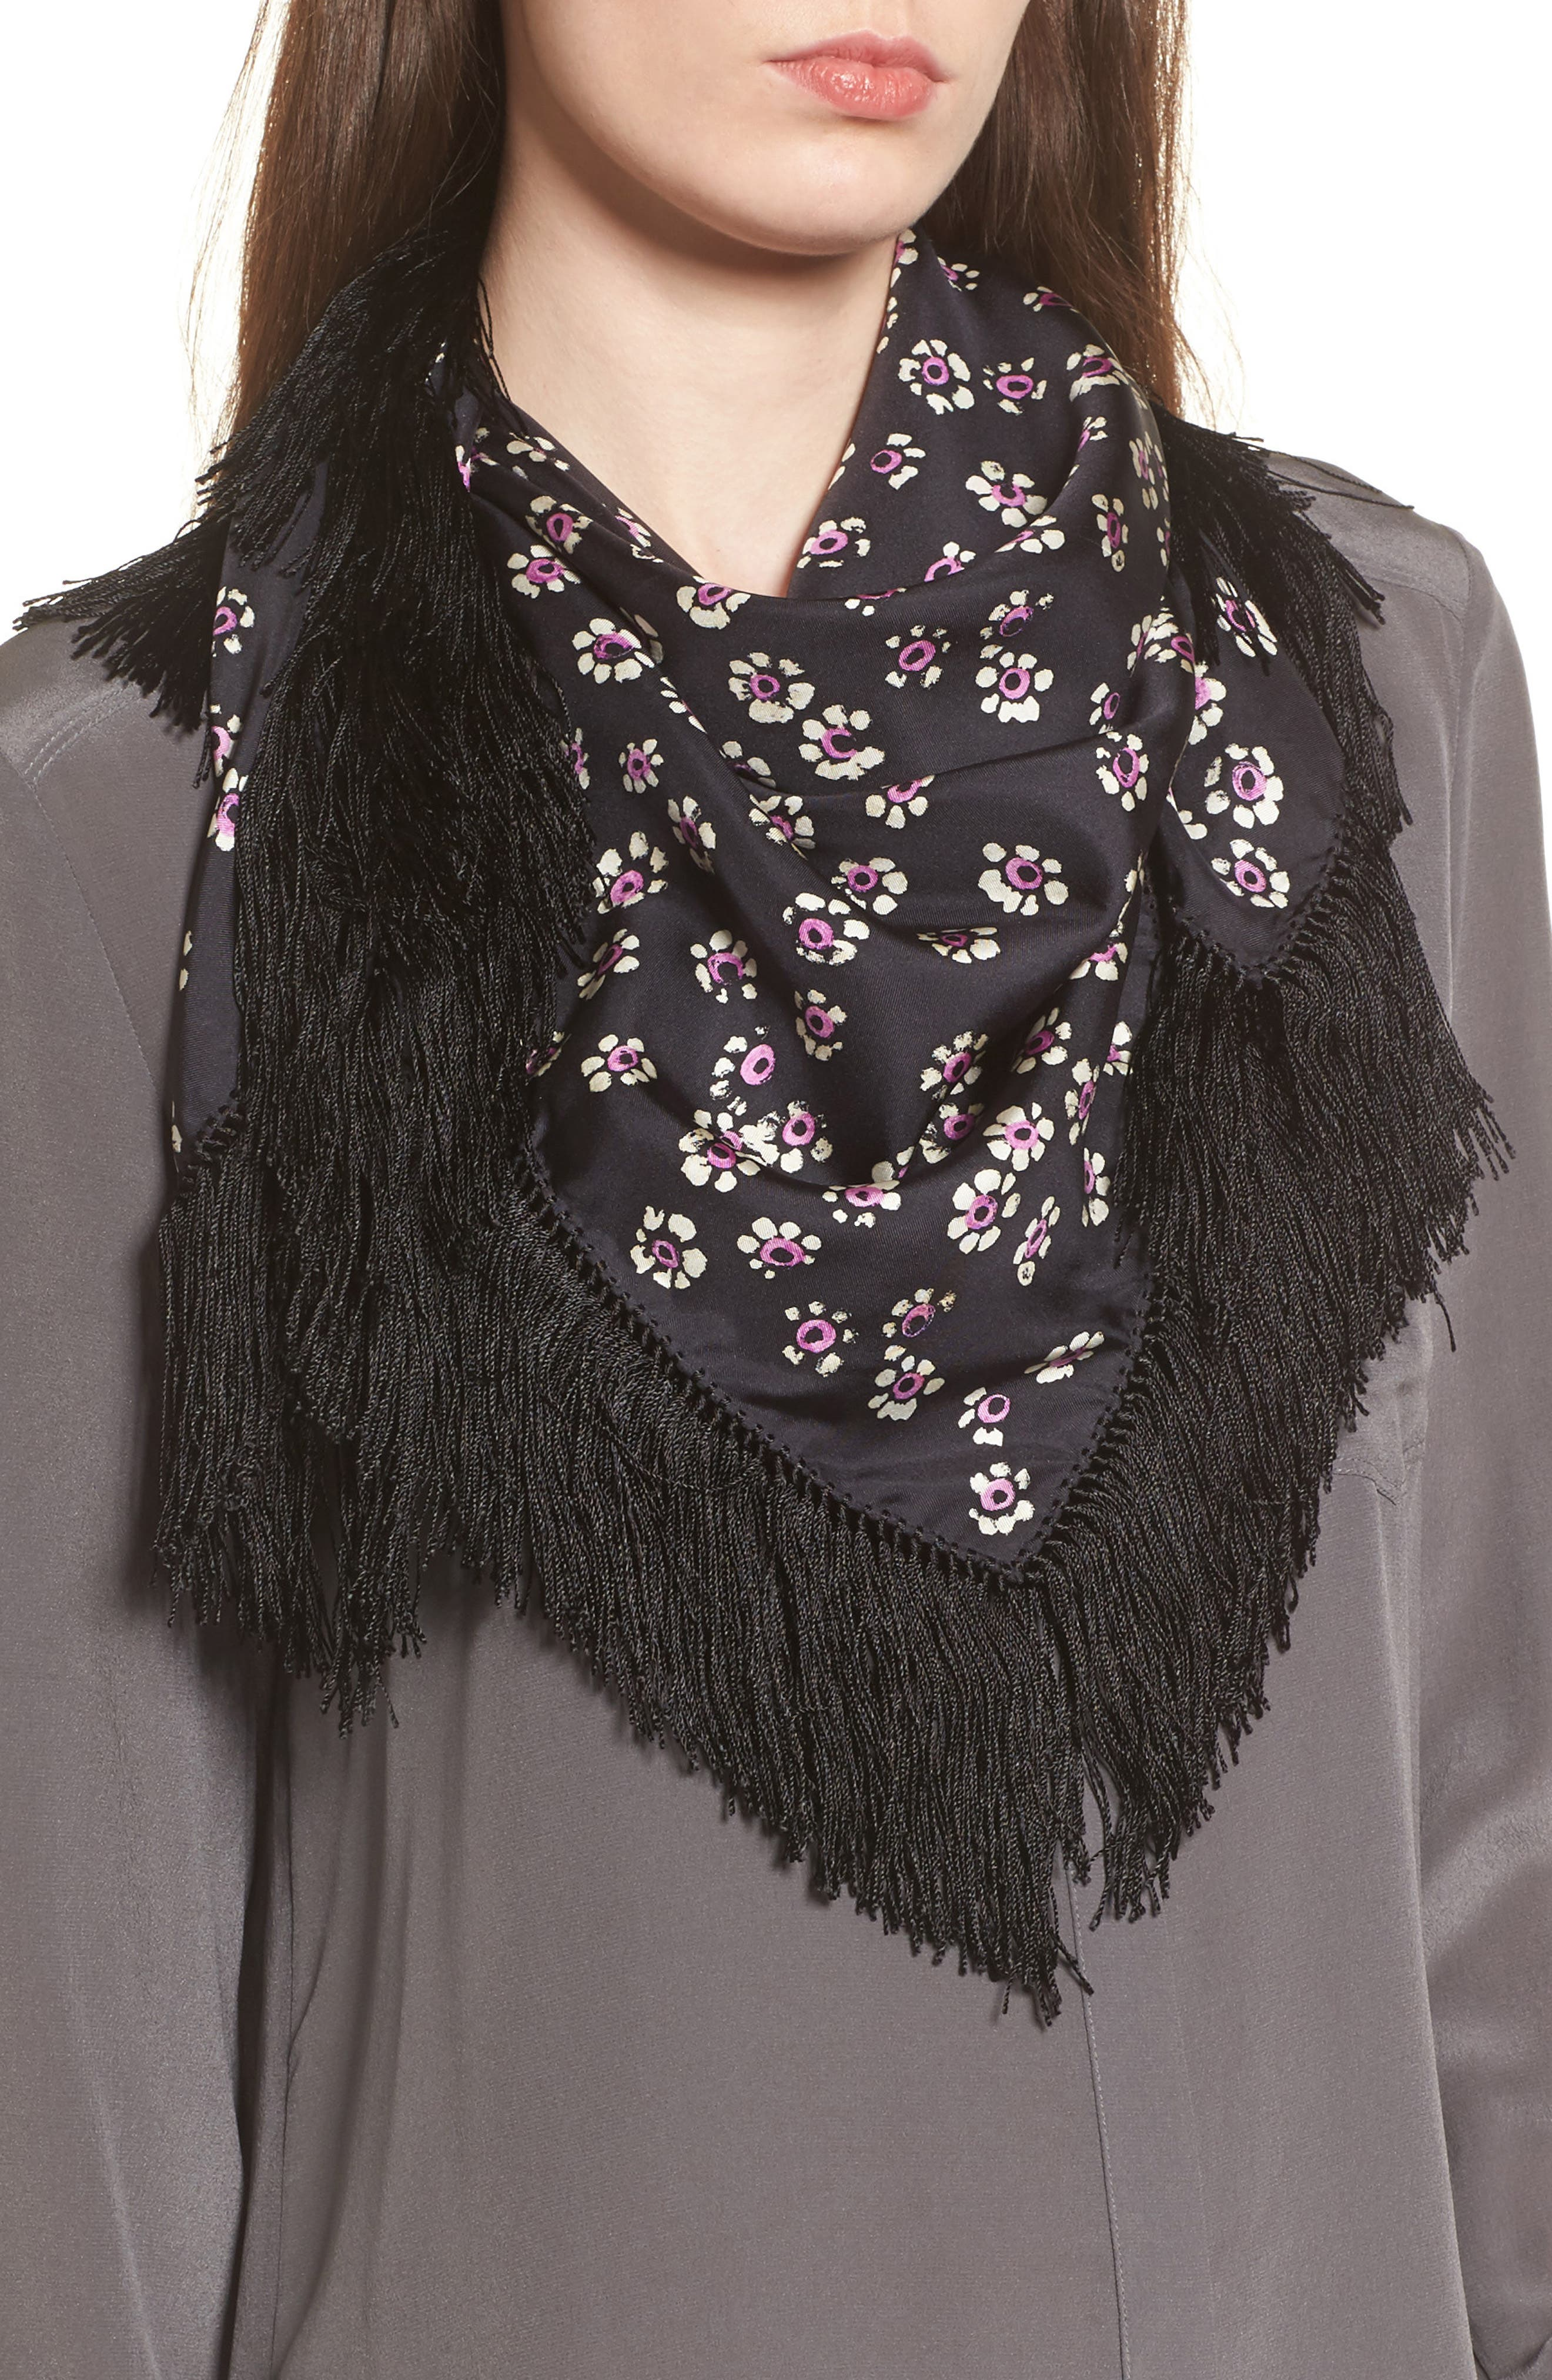 Fringed Square Silk Scarf,                         Main,                         color, Black Stamped Floral